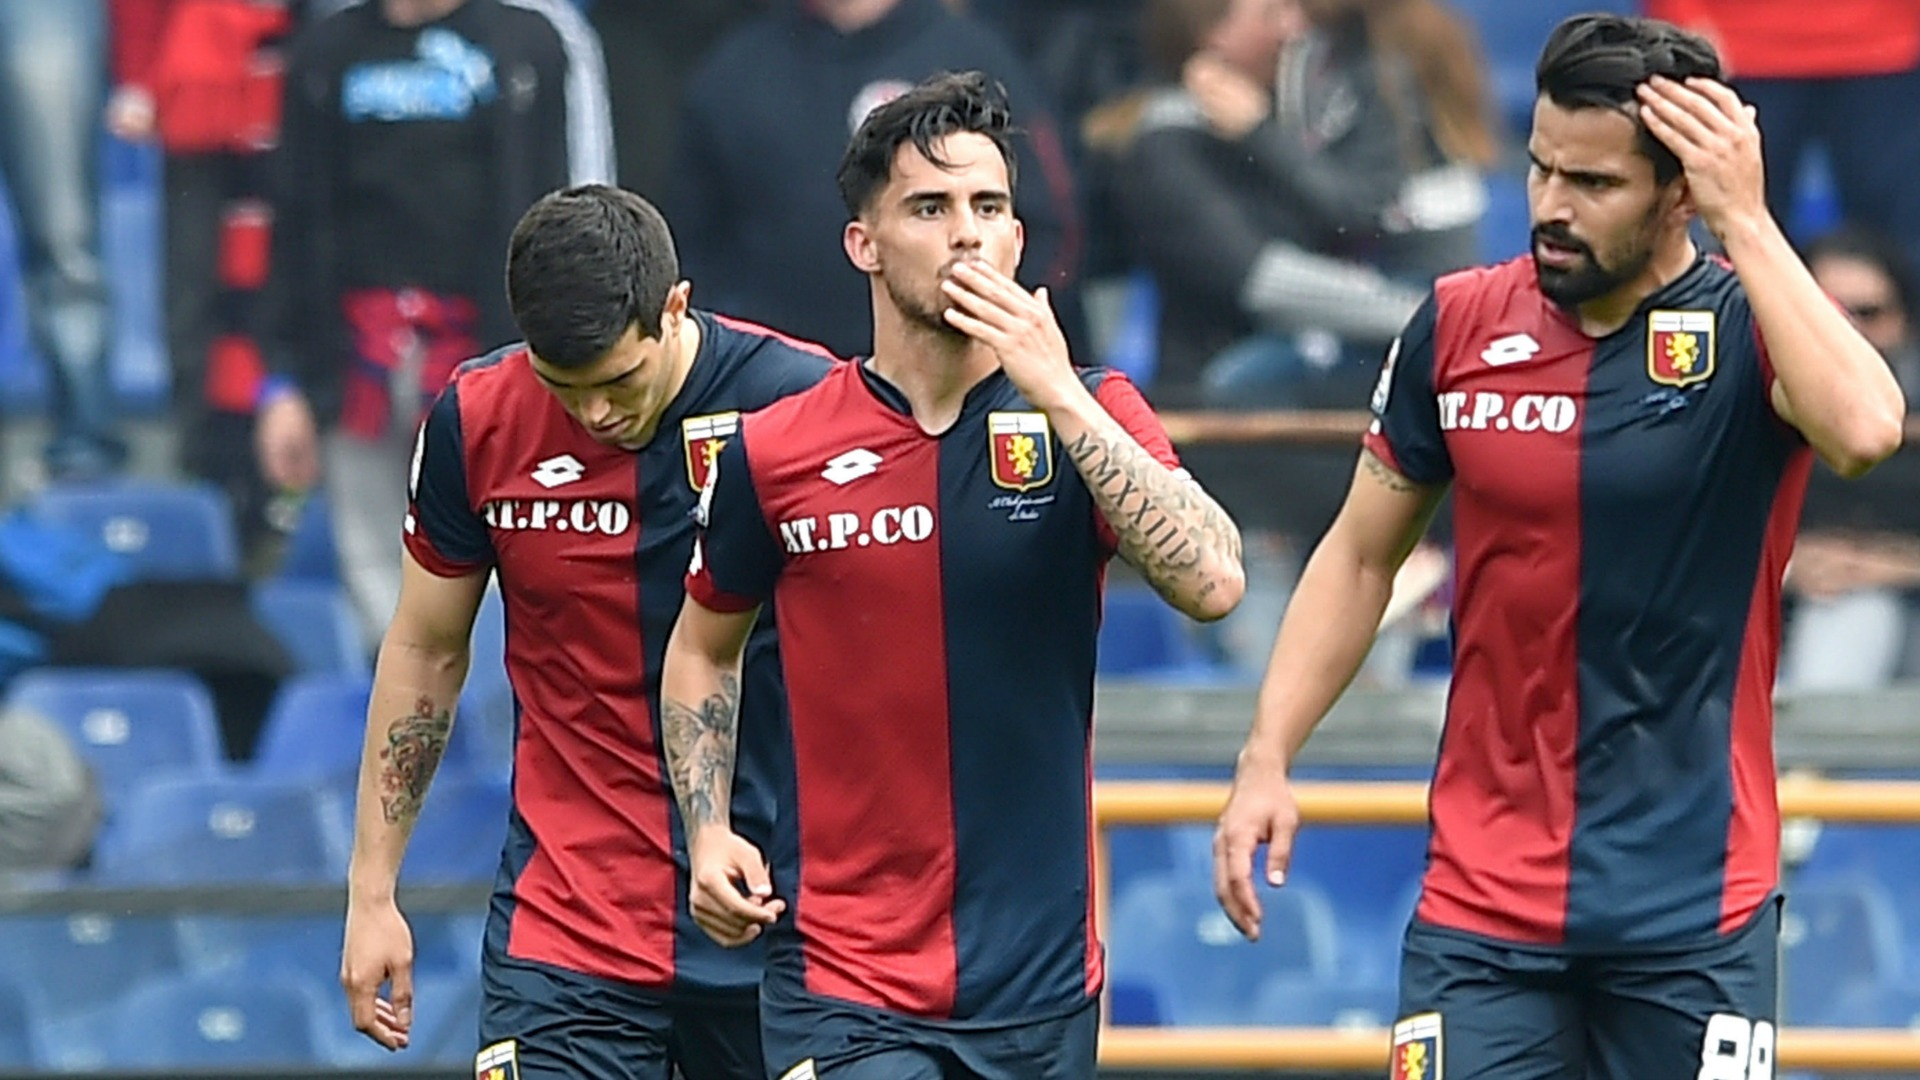 Video: Genoa vs Frosinone